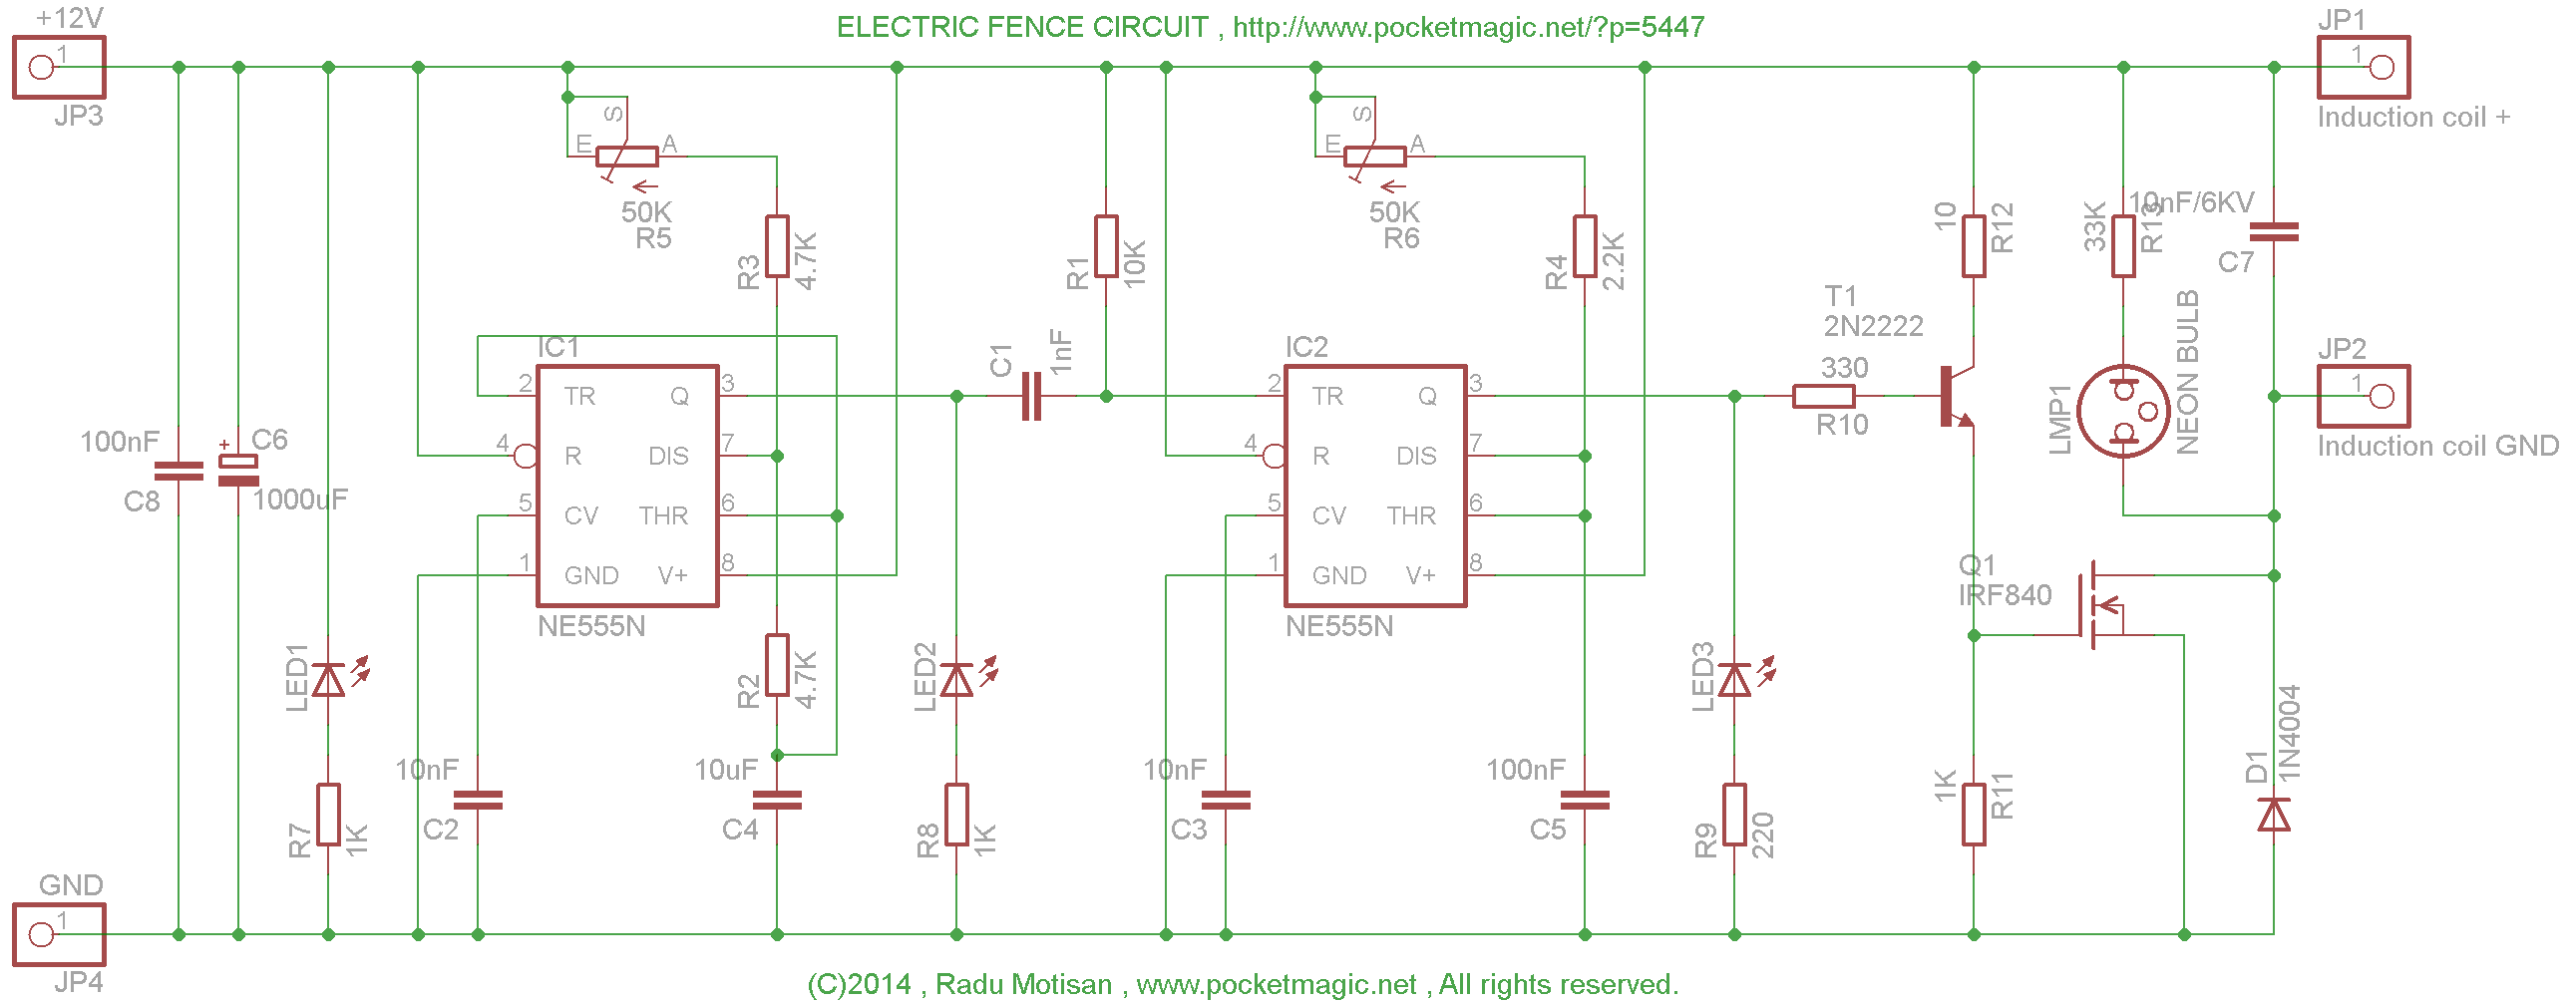 electric fence circuit for perimeter protection pocketmagic rh pocketmagic net electric fence circuit diagram 555 electric fence circuit diagram pdf